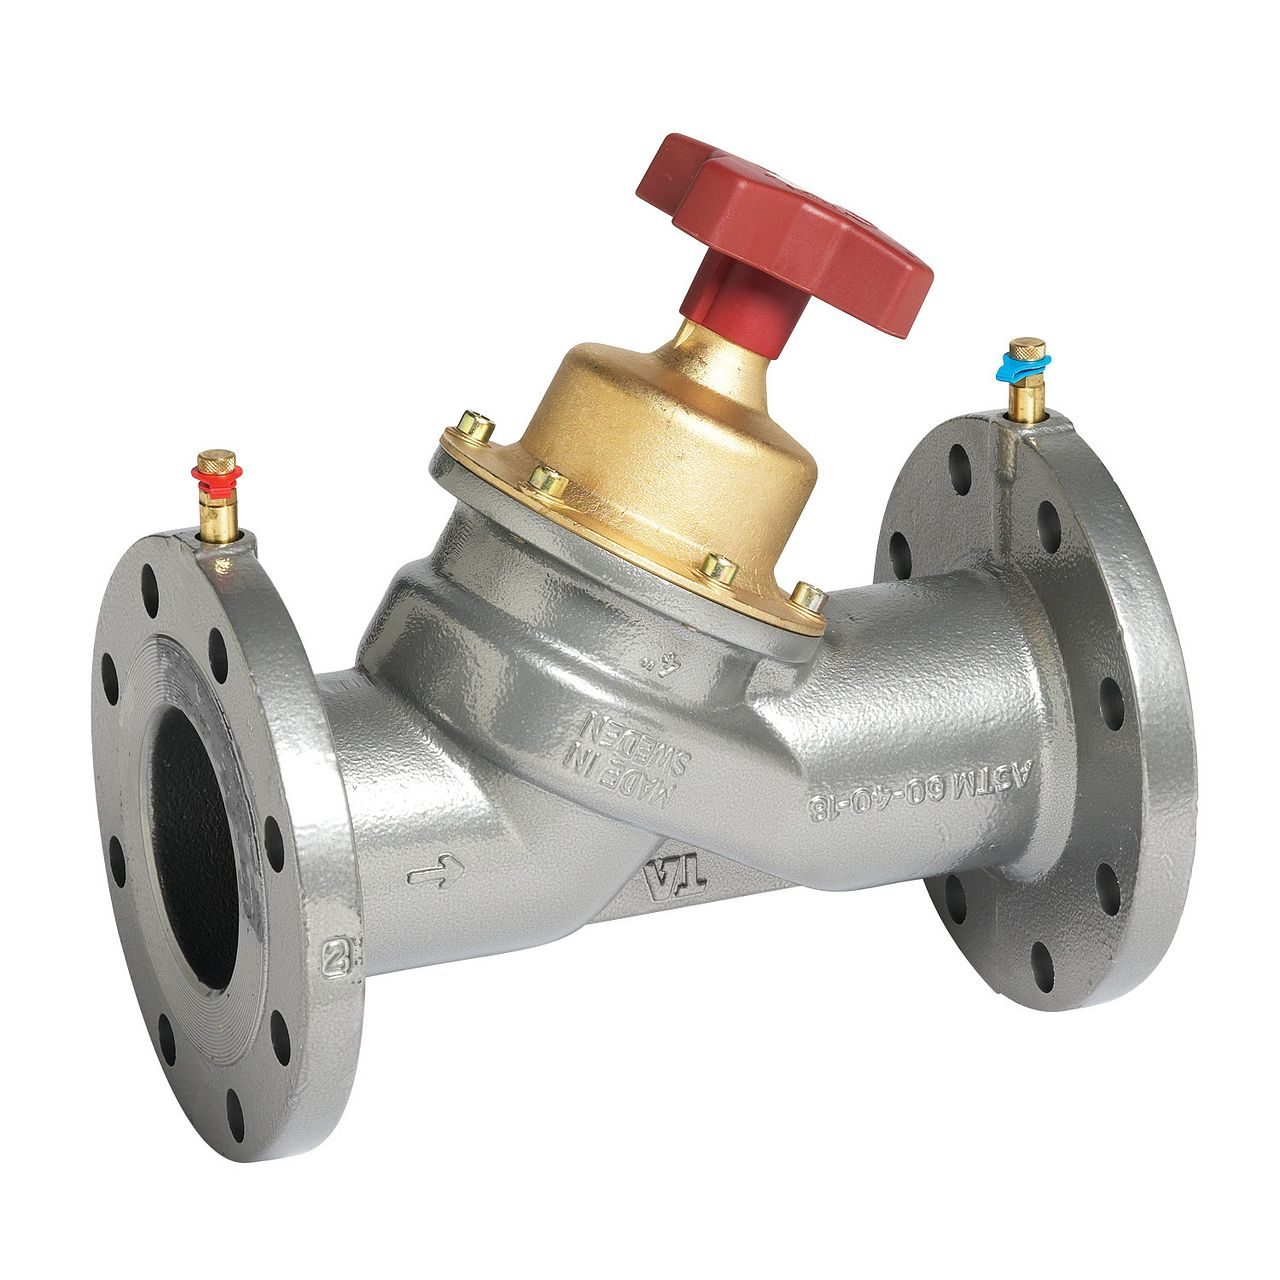 Victaulic Manual Balancing Valves Hydronic Flow Control Air Valve Schematic